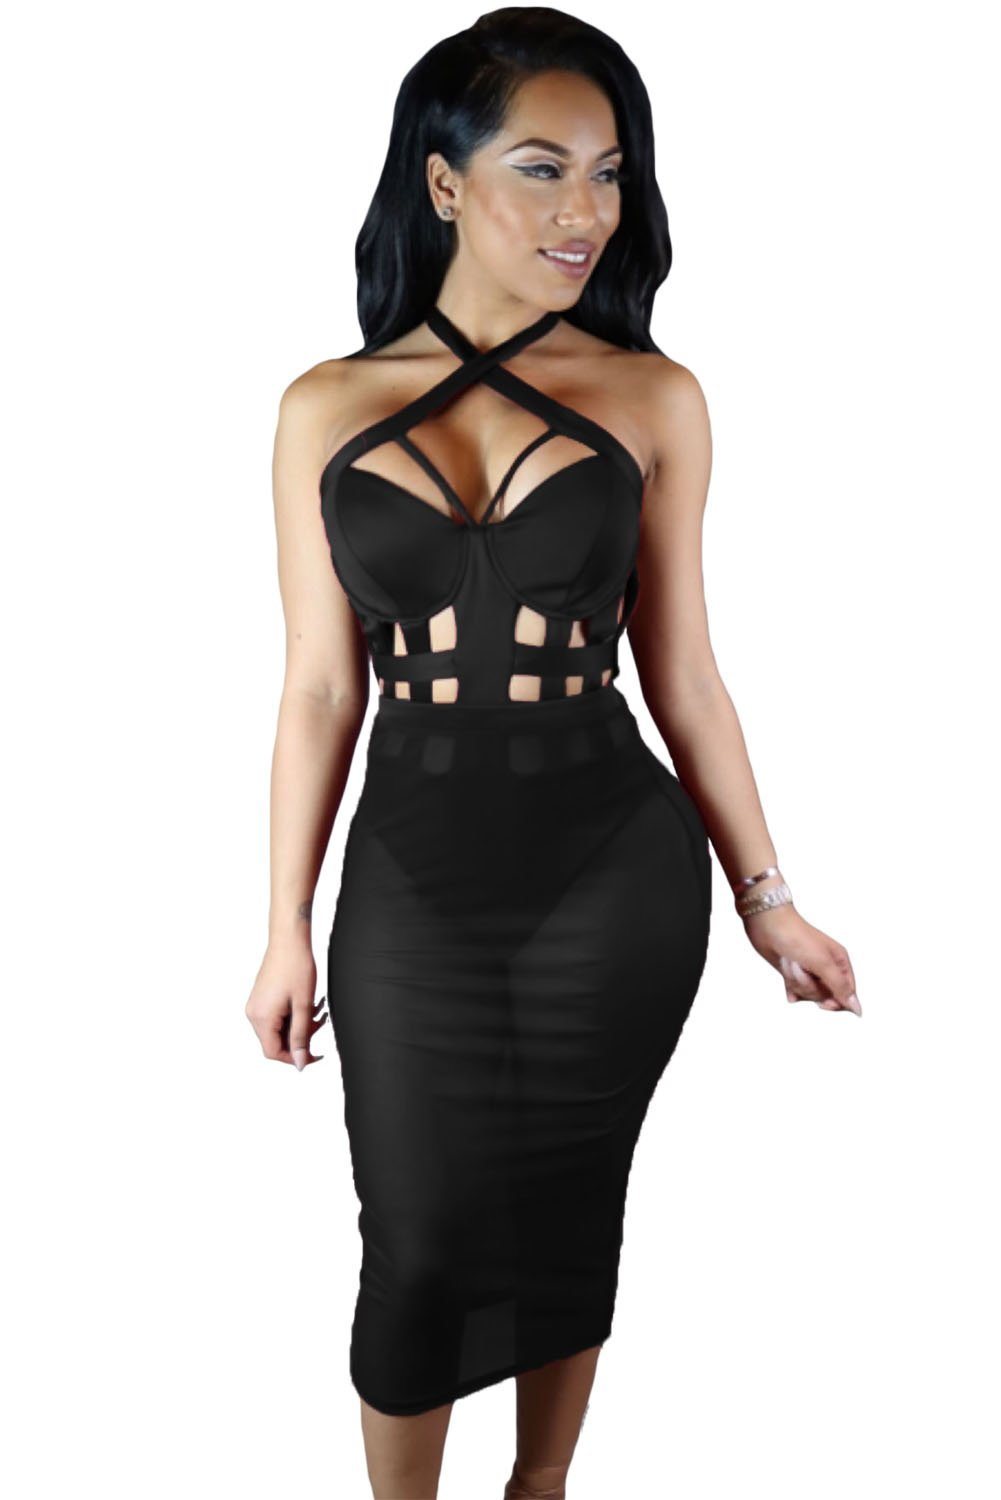 Black Sleeveless Short Bodycon Cutout Dress  Online Store for Women Sexy Dresses